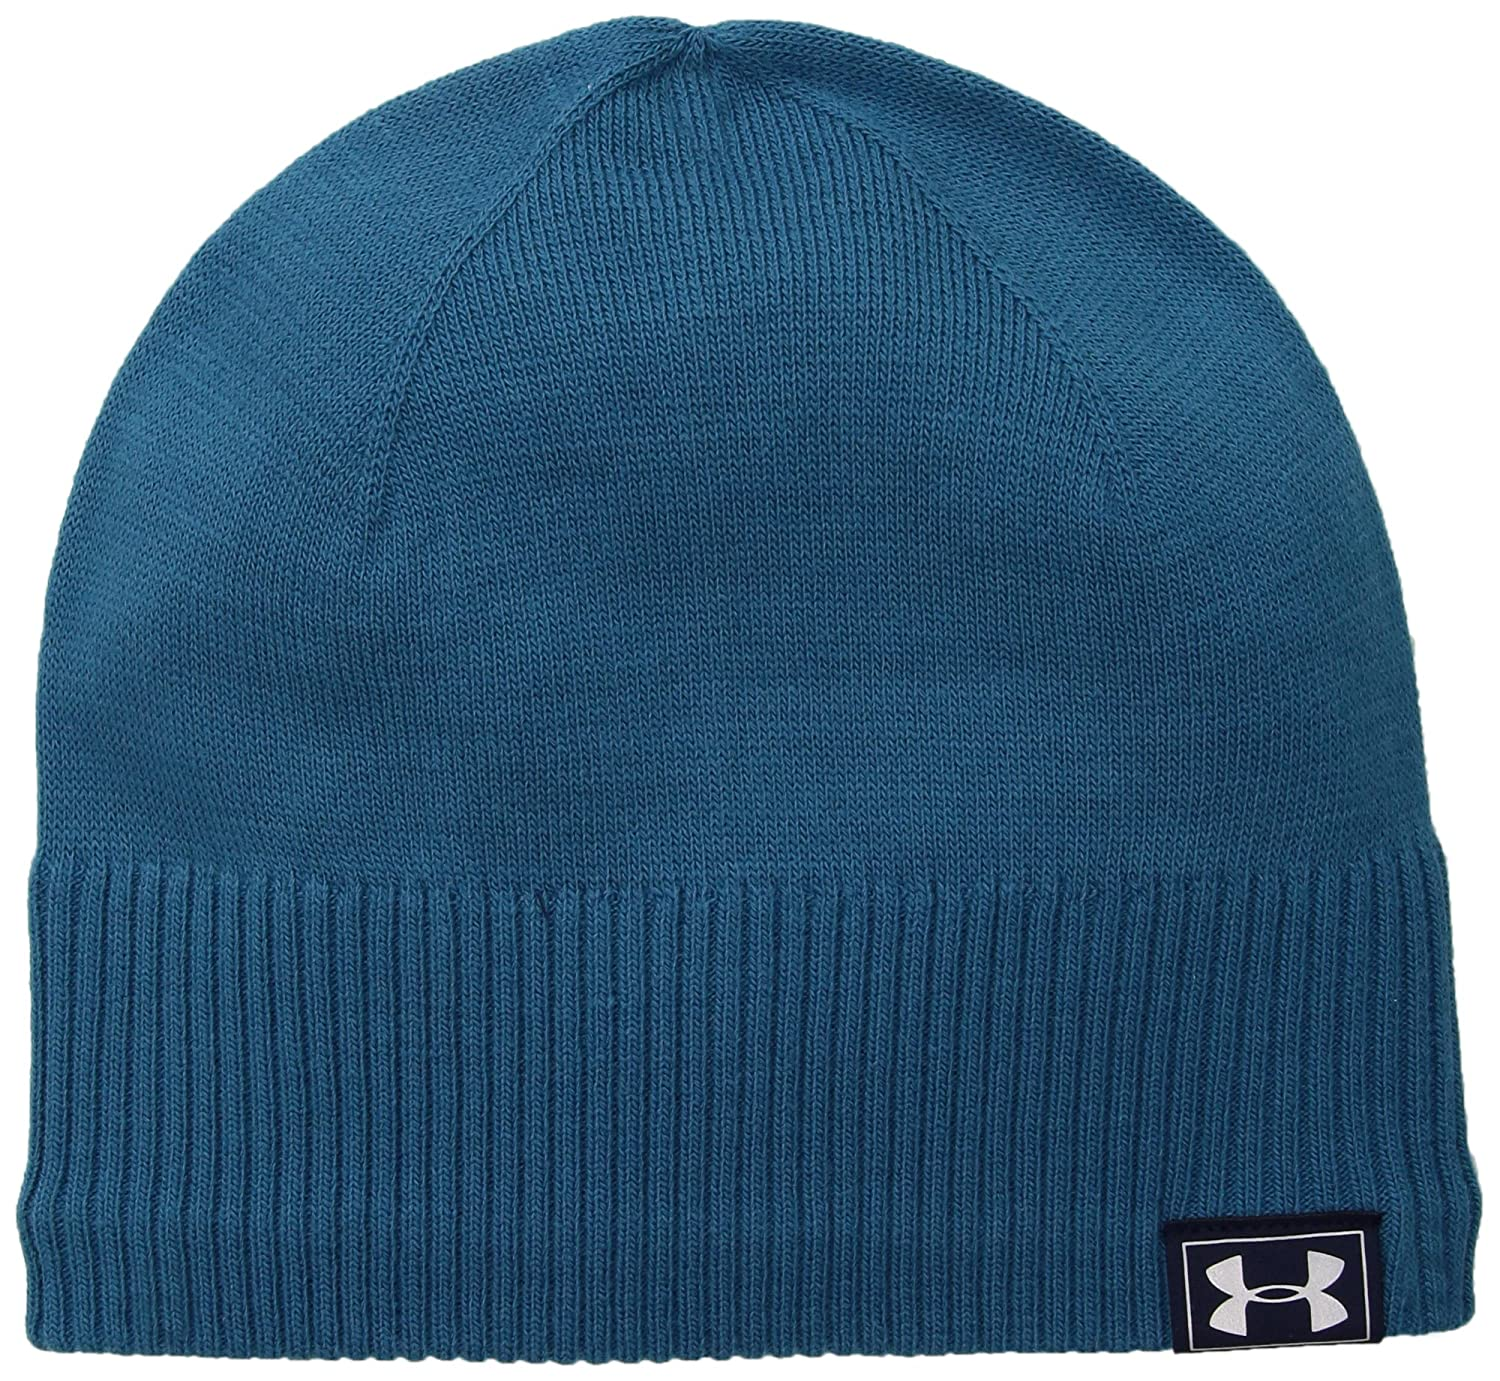 Under Armour Accessories Armor Mens ColdGear Reactor Knit Beanie Coats & Jackets Clothing, Shoes & Accessories